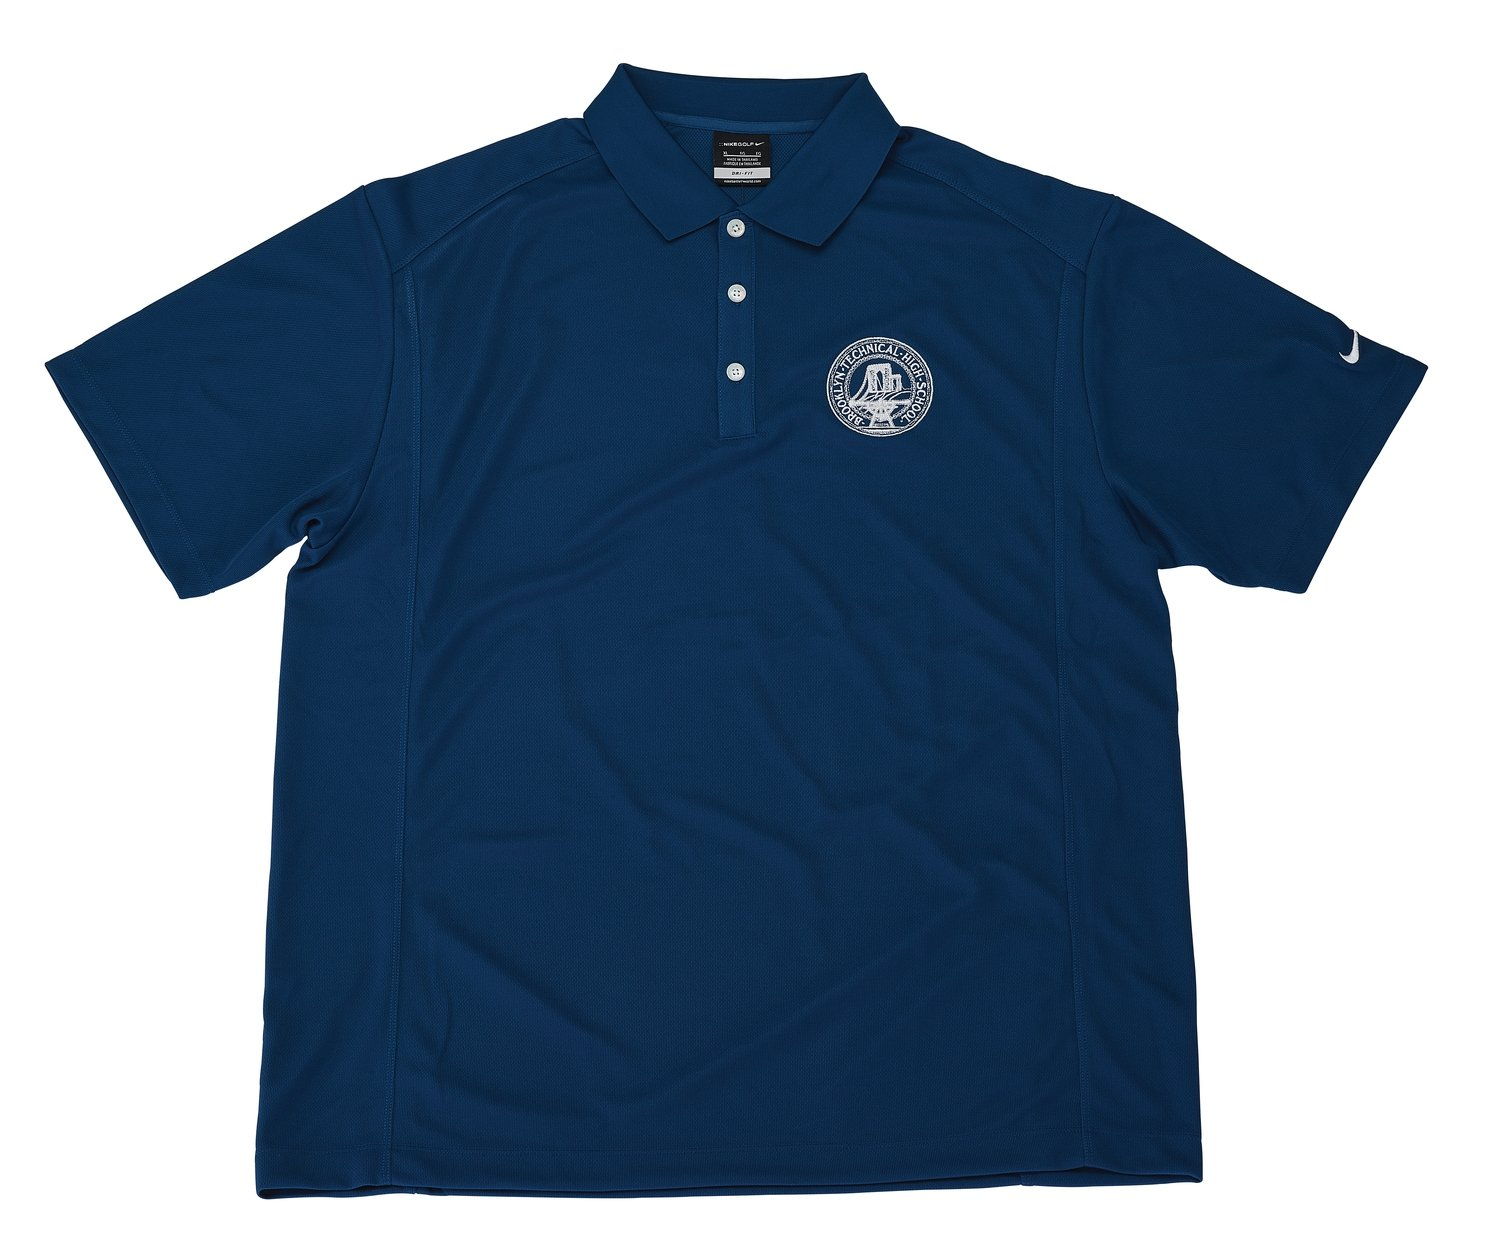 Golf Shirt - Nike brand - Navy Blue